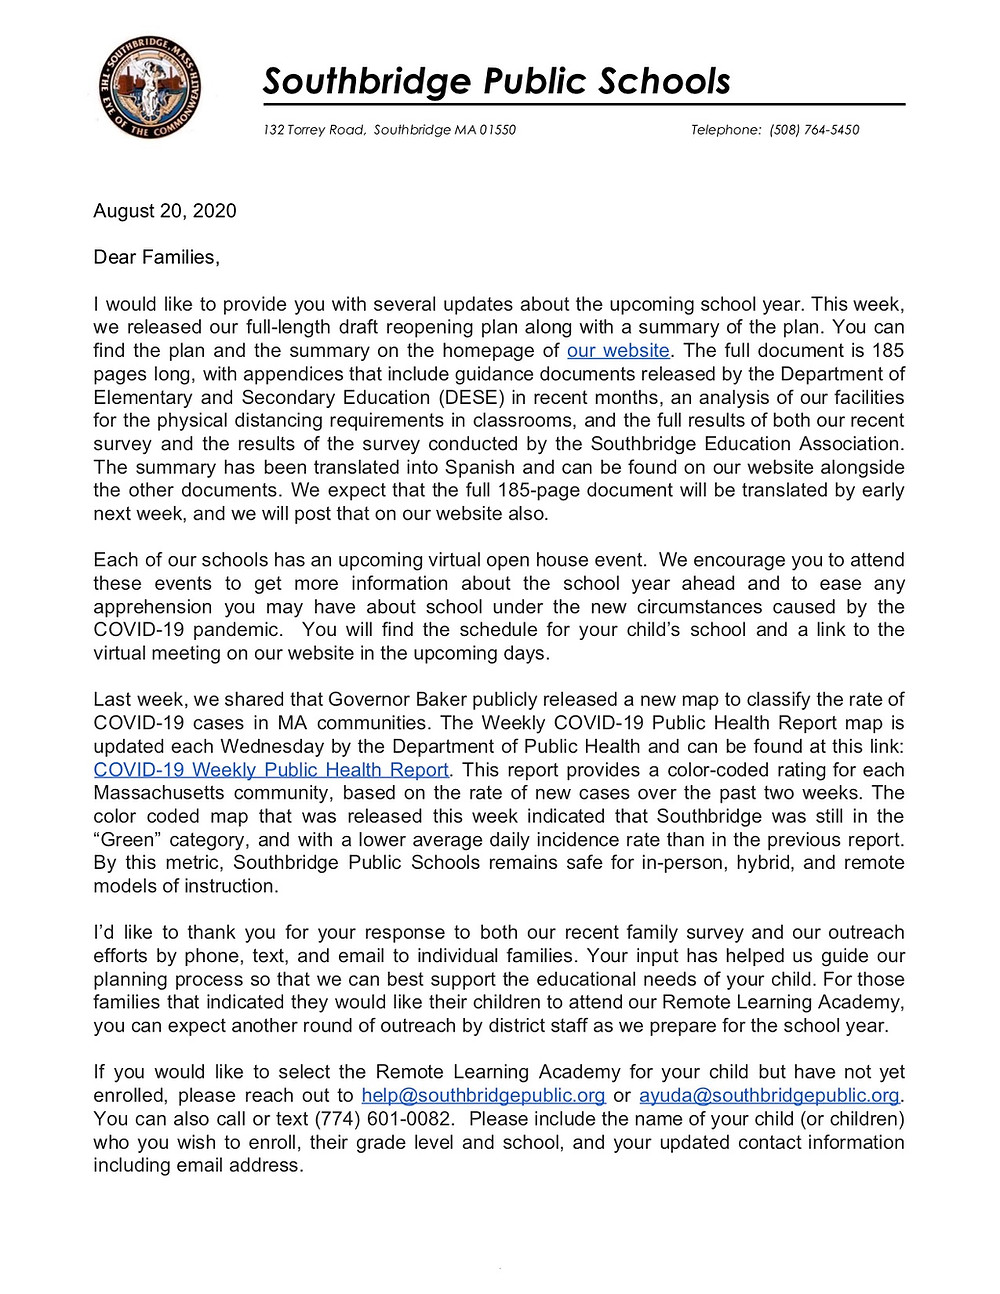 Image of the first page of a letter from Dr. Villar. All wording in the image is also in the body of this blog post.